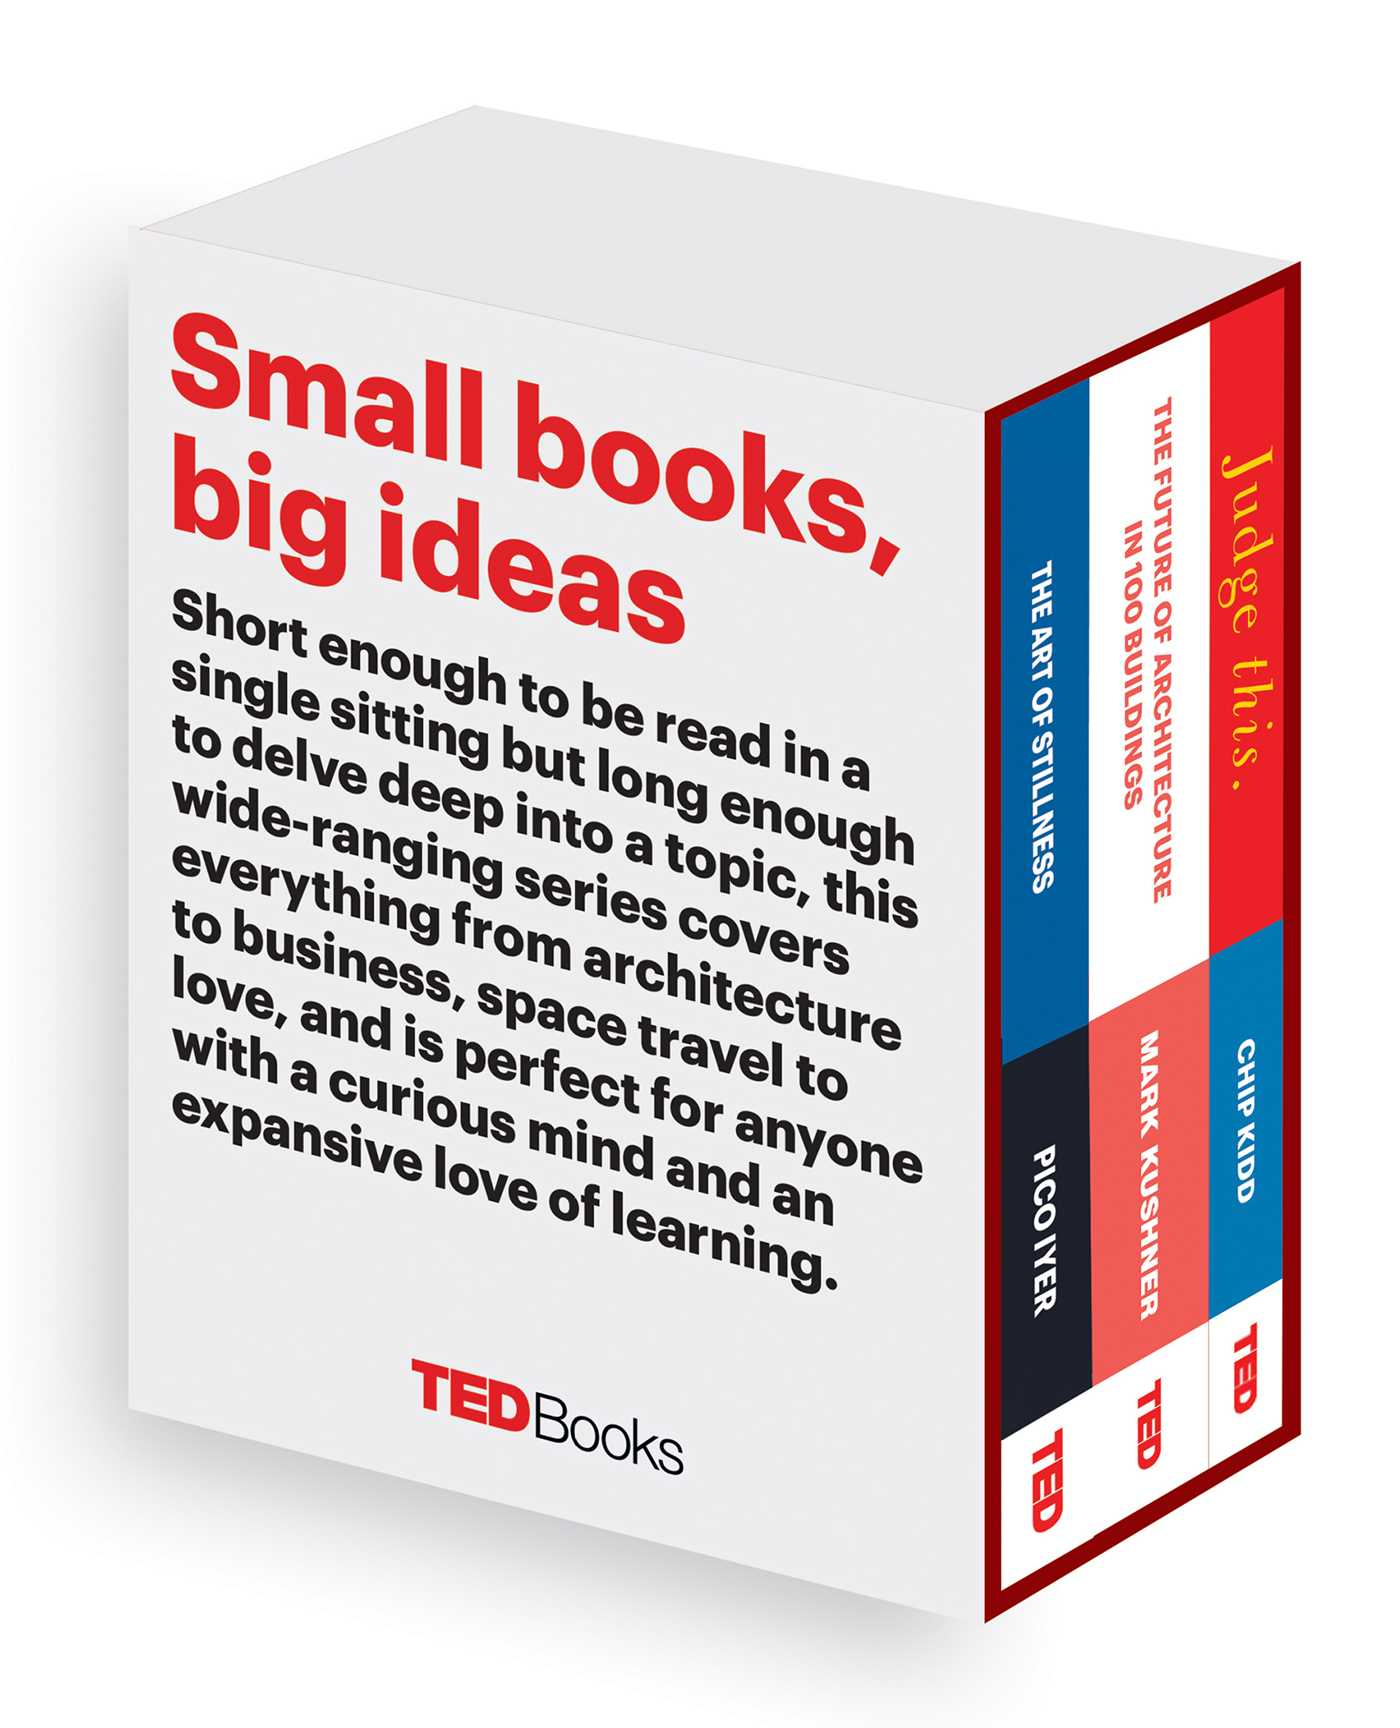 Ted books box set the creative mind 9781501139123 hr